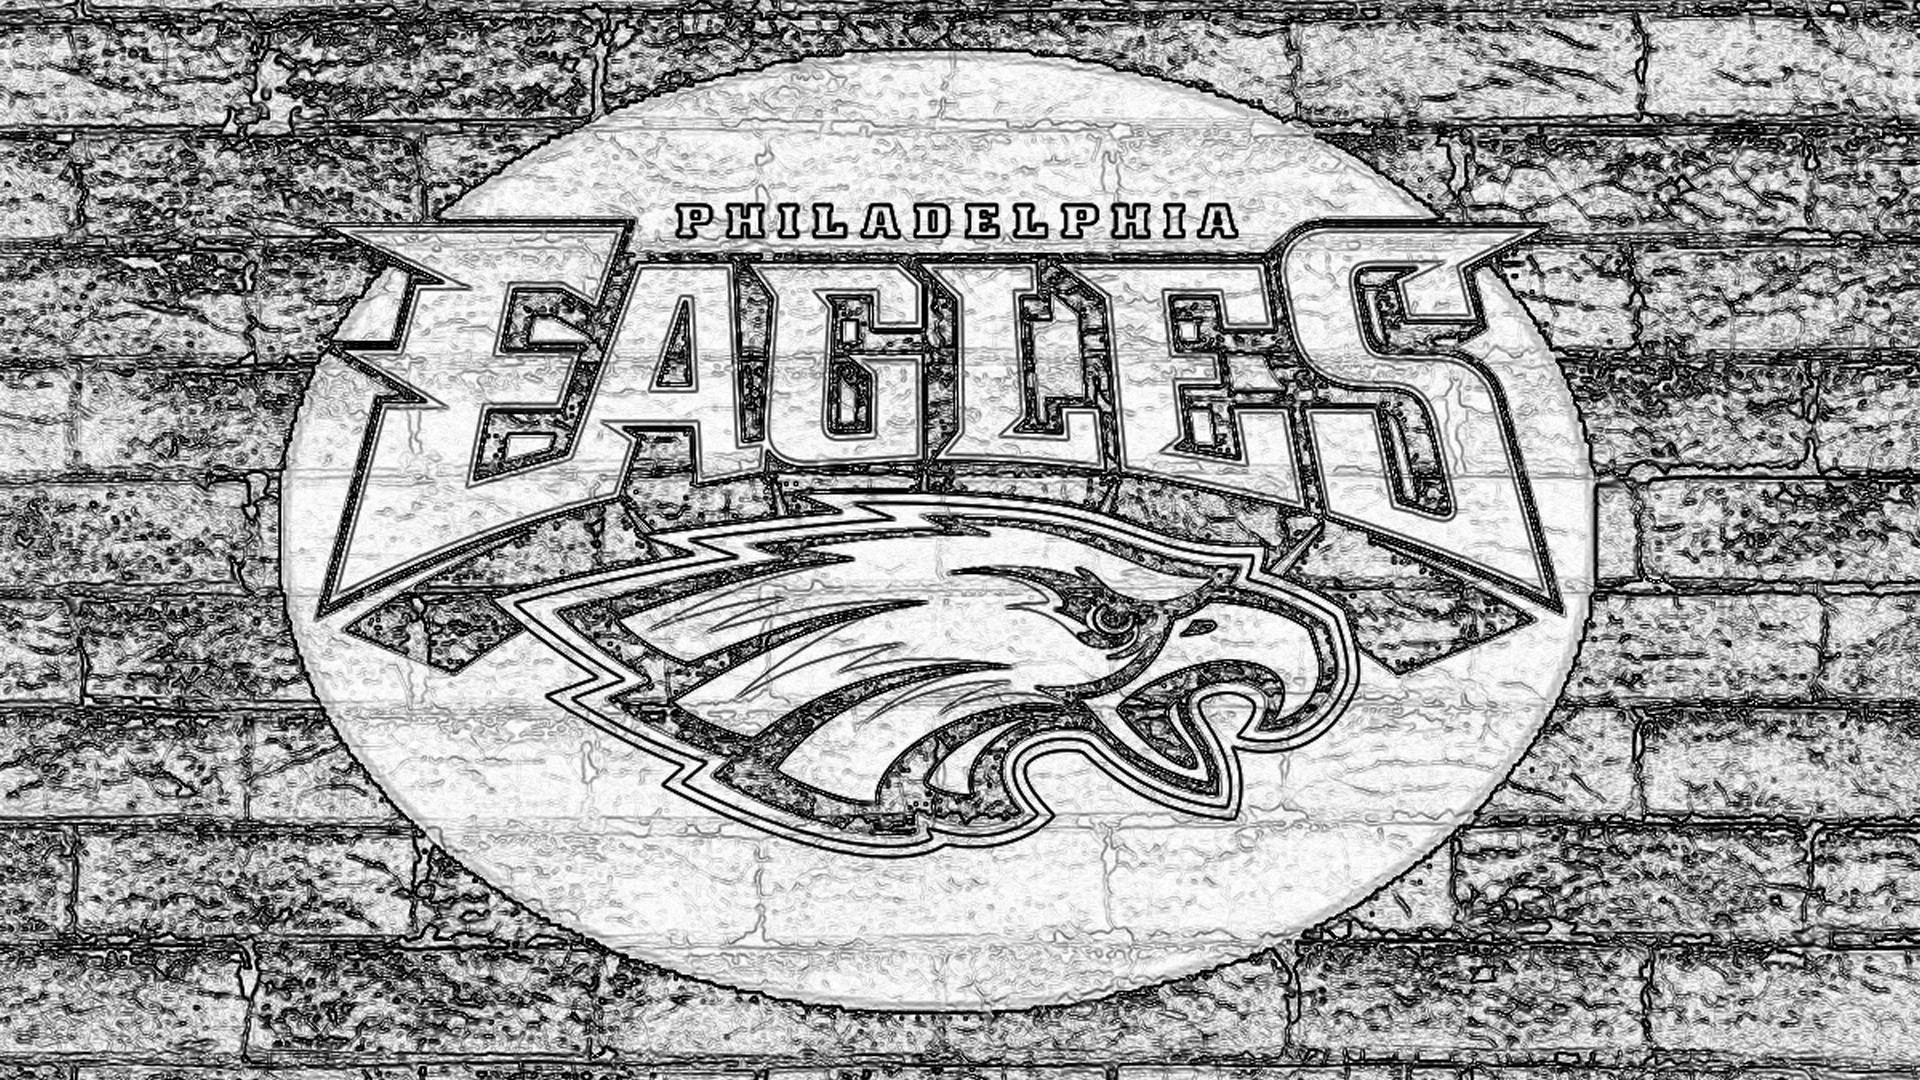 1920x1080 Philadelphia Eagles Sketch Logo On Grey Brick Wall 1920X1080 HD NFL